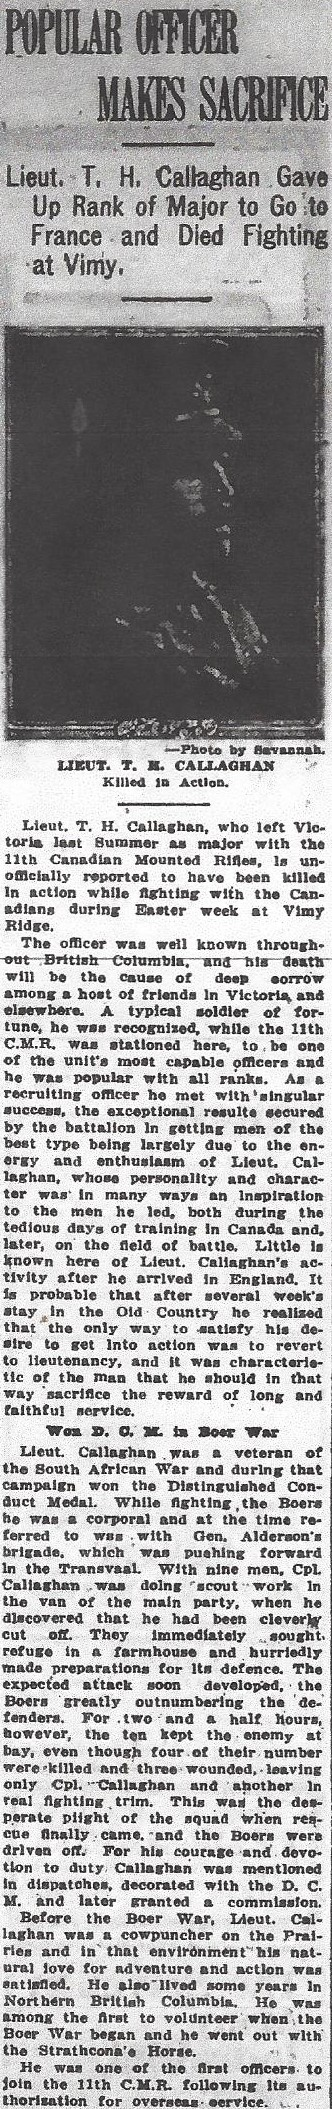 Newspaper clipping– From the Daily Colonist of May 12, 1917. Image taken from web address of http://archive.org/stream/dailycolonist59y132uvic#page/n0/mode/1up